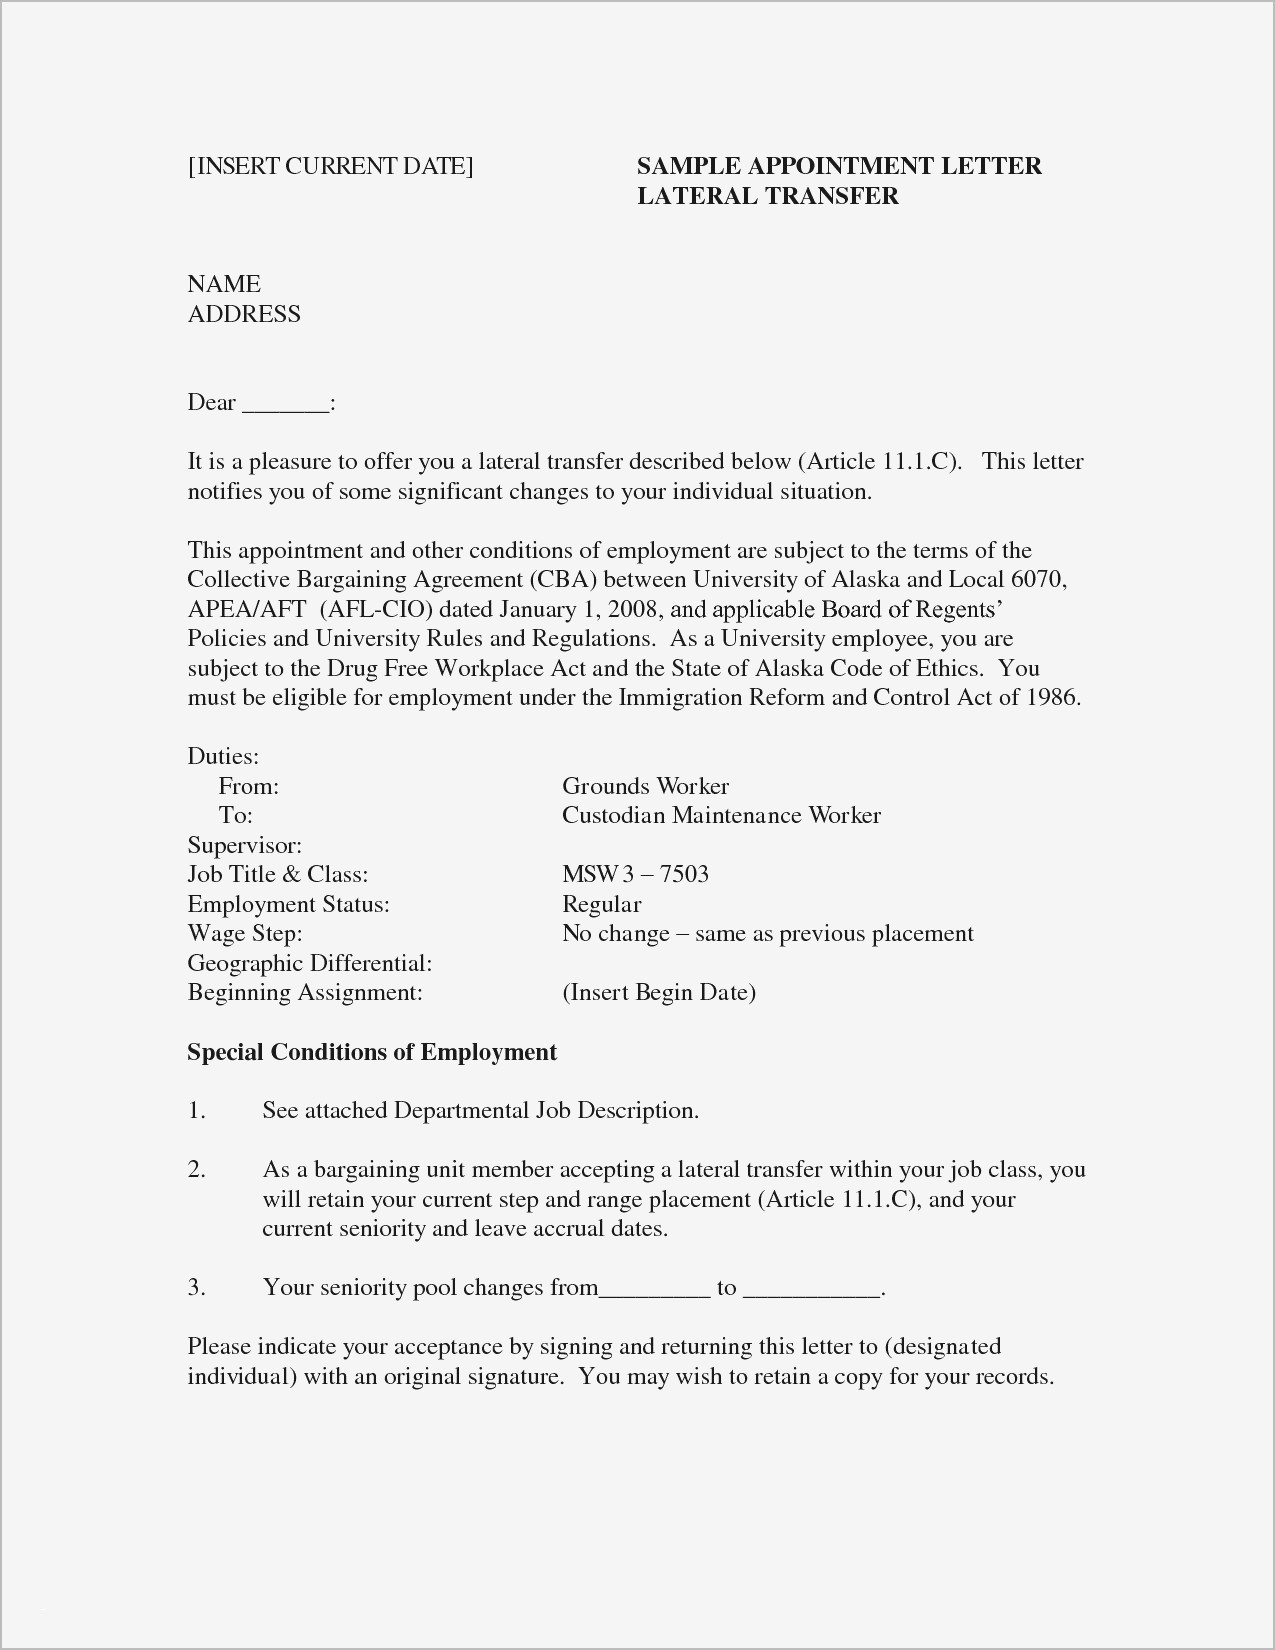 Call Center Job Description for Resume - 20 Call Center Resume Examples